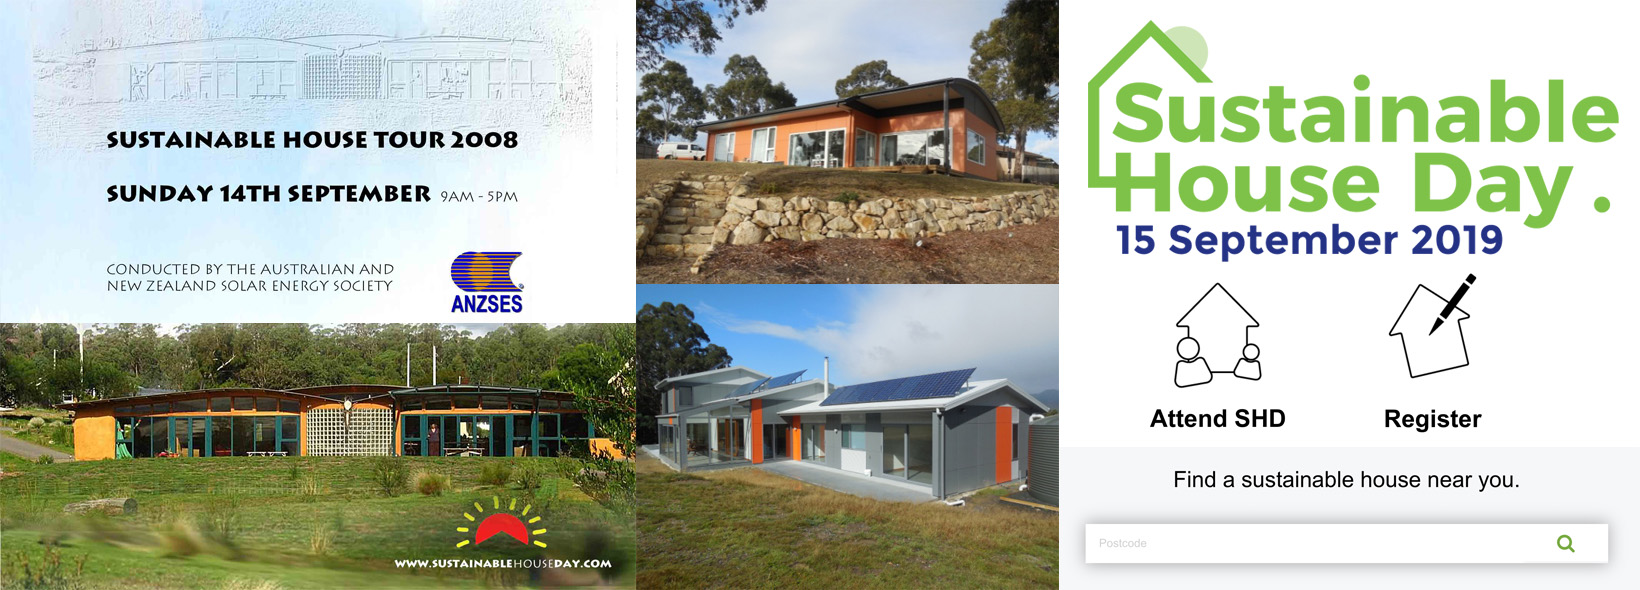 Experiences of Sustainable House Days, from Past to Present